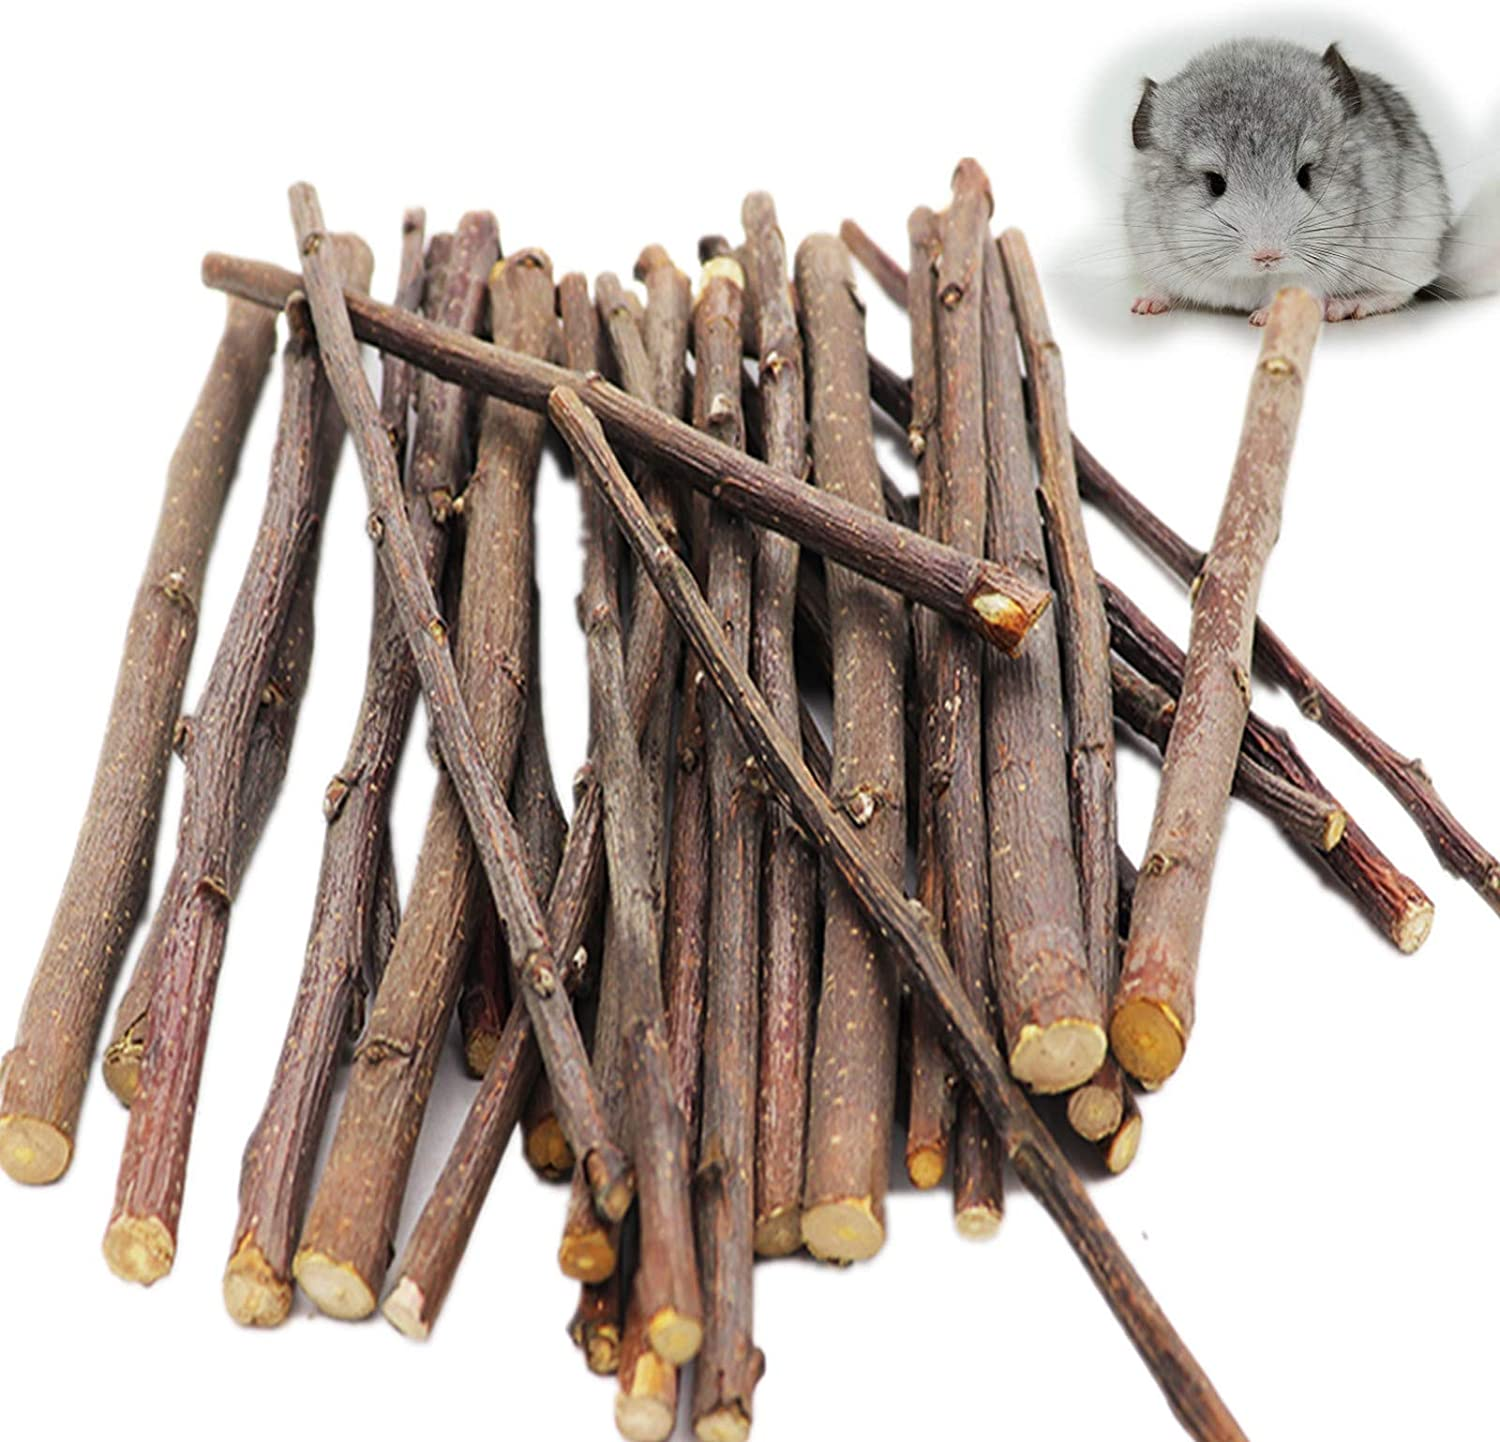 rosyclo Apple Sticks Natural Organic Pet Snacks Chew Toys Rabbits Hamster Guinea Pig Squirrels Chinchilla Food Gerbil and Other Small Animal Pets